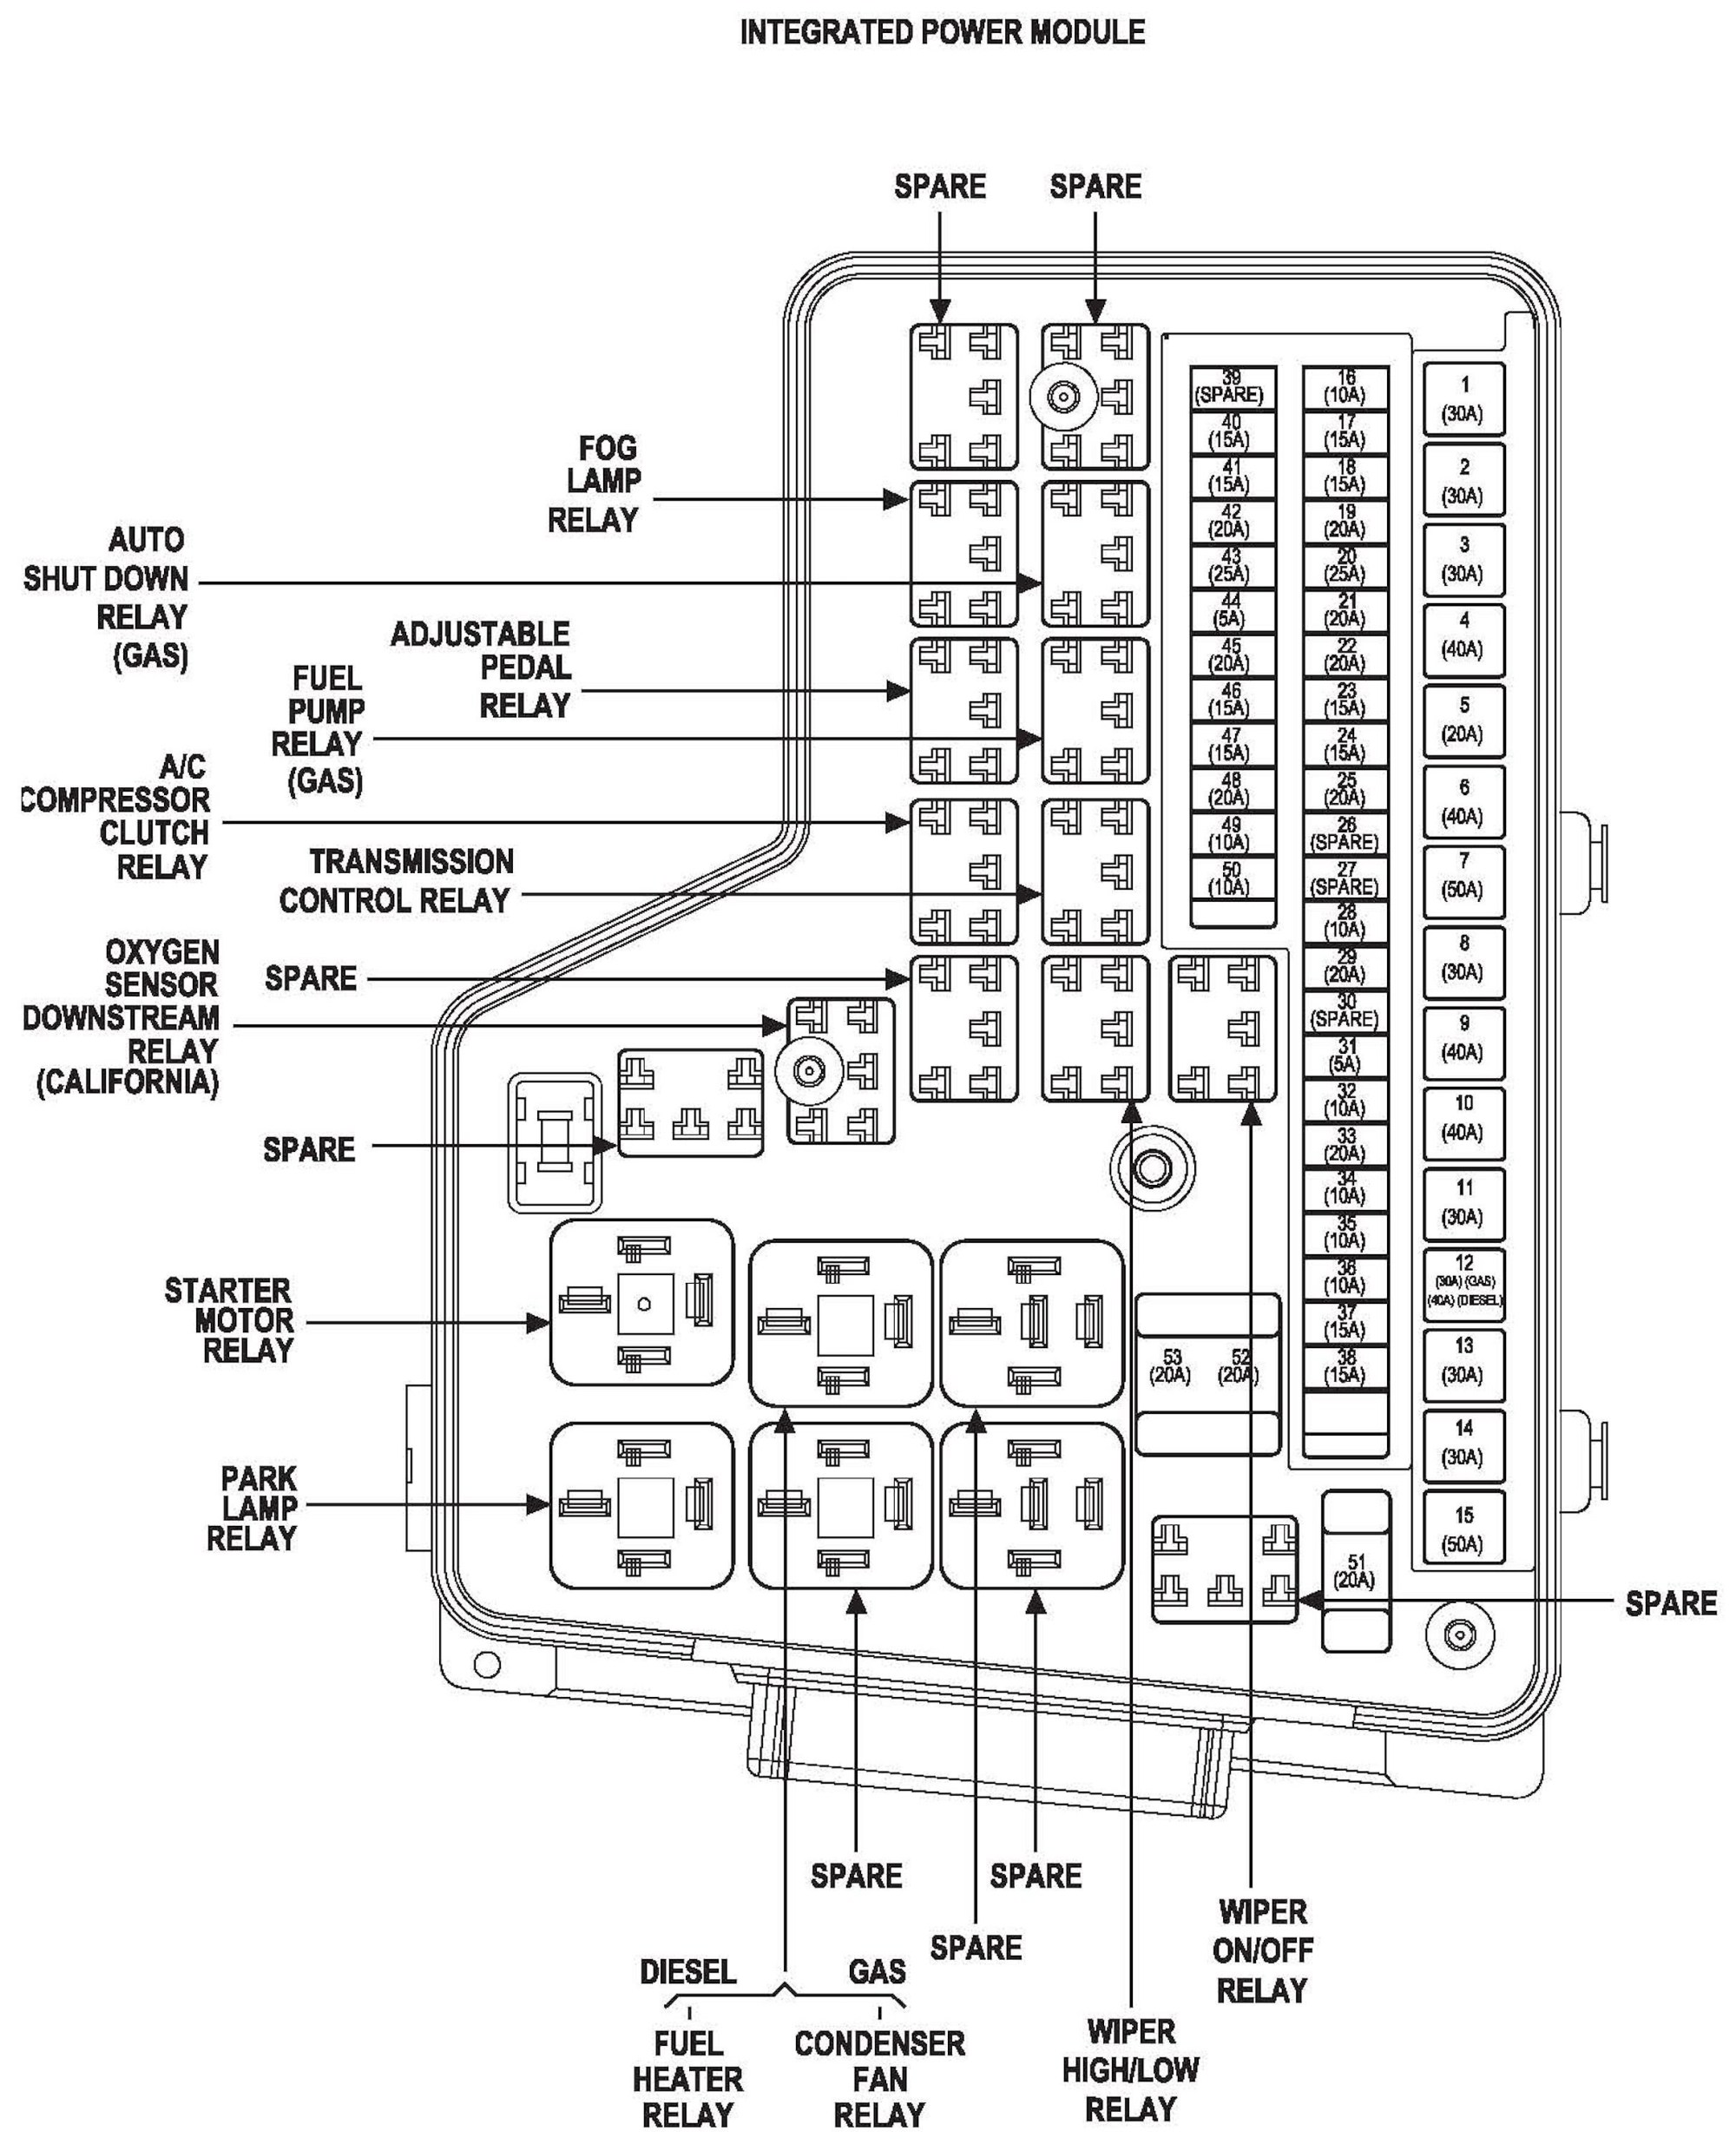 hight resolution of 2013 dodge ram fuse box diagram wiring diagram paper 2013 dodge charger wiring diagram 2013 charger fuse diagram